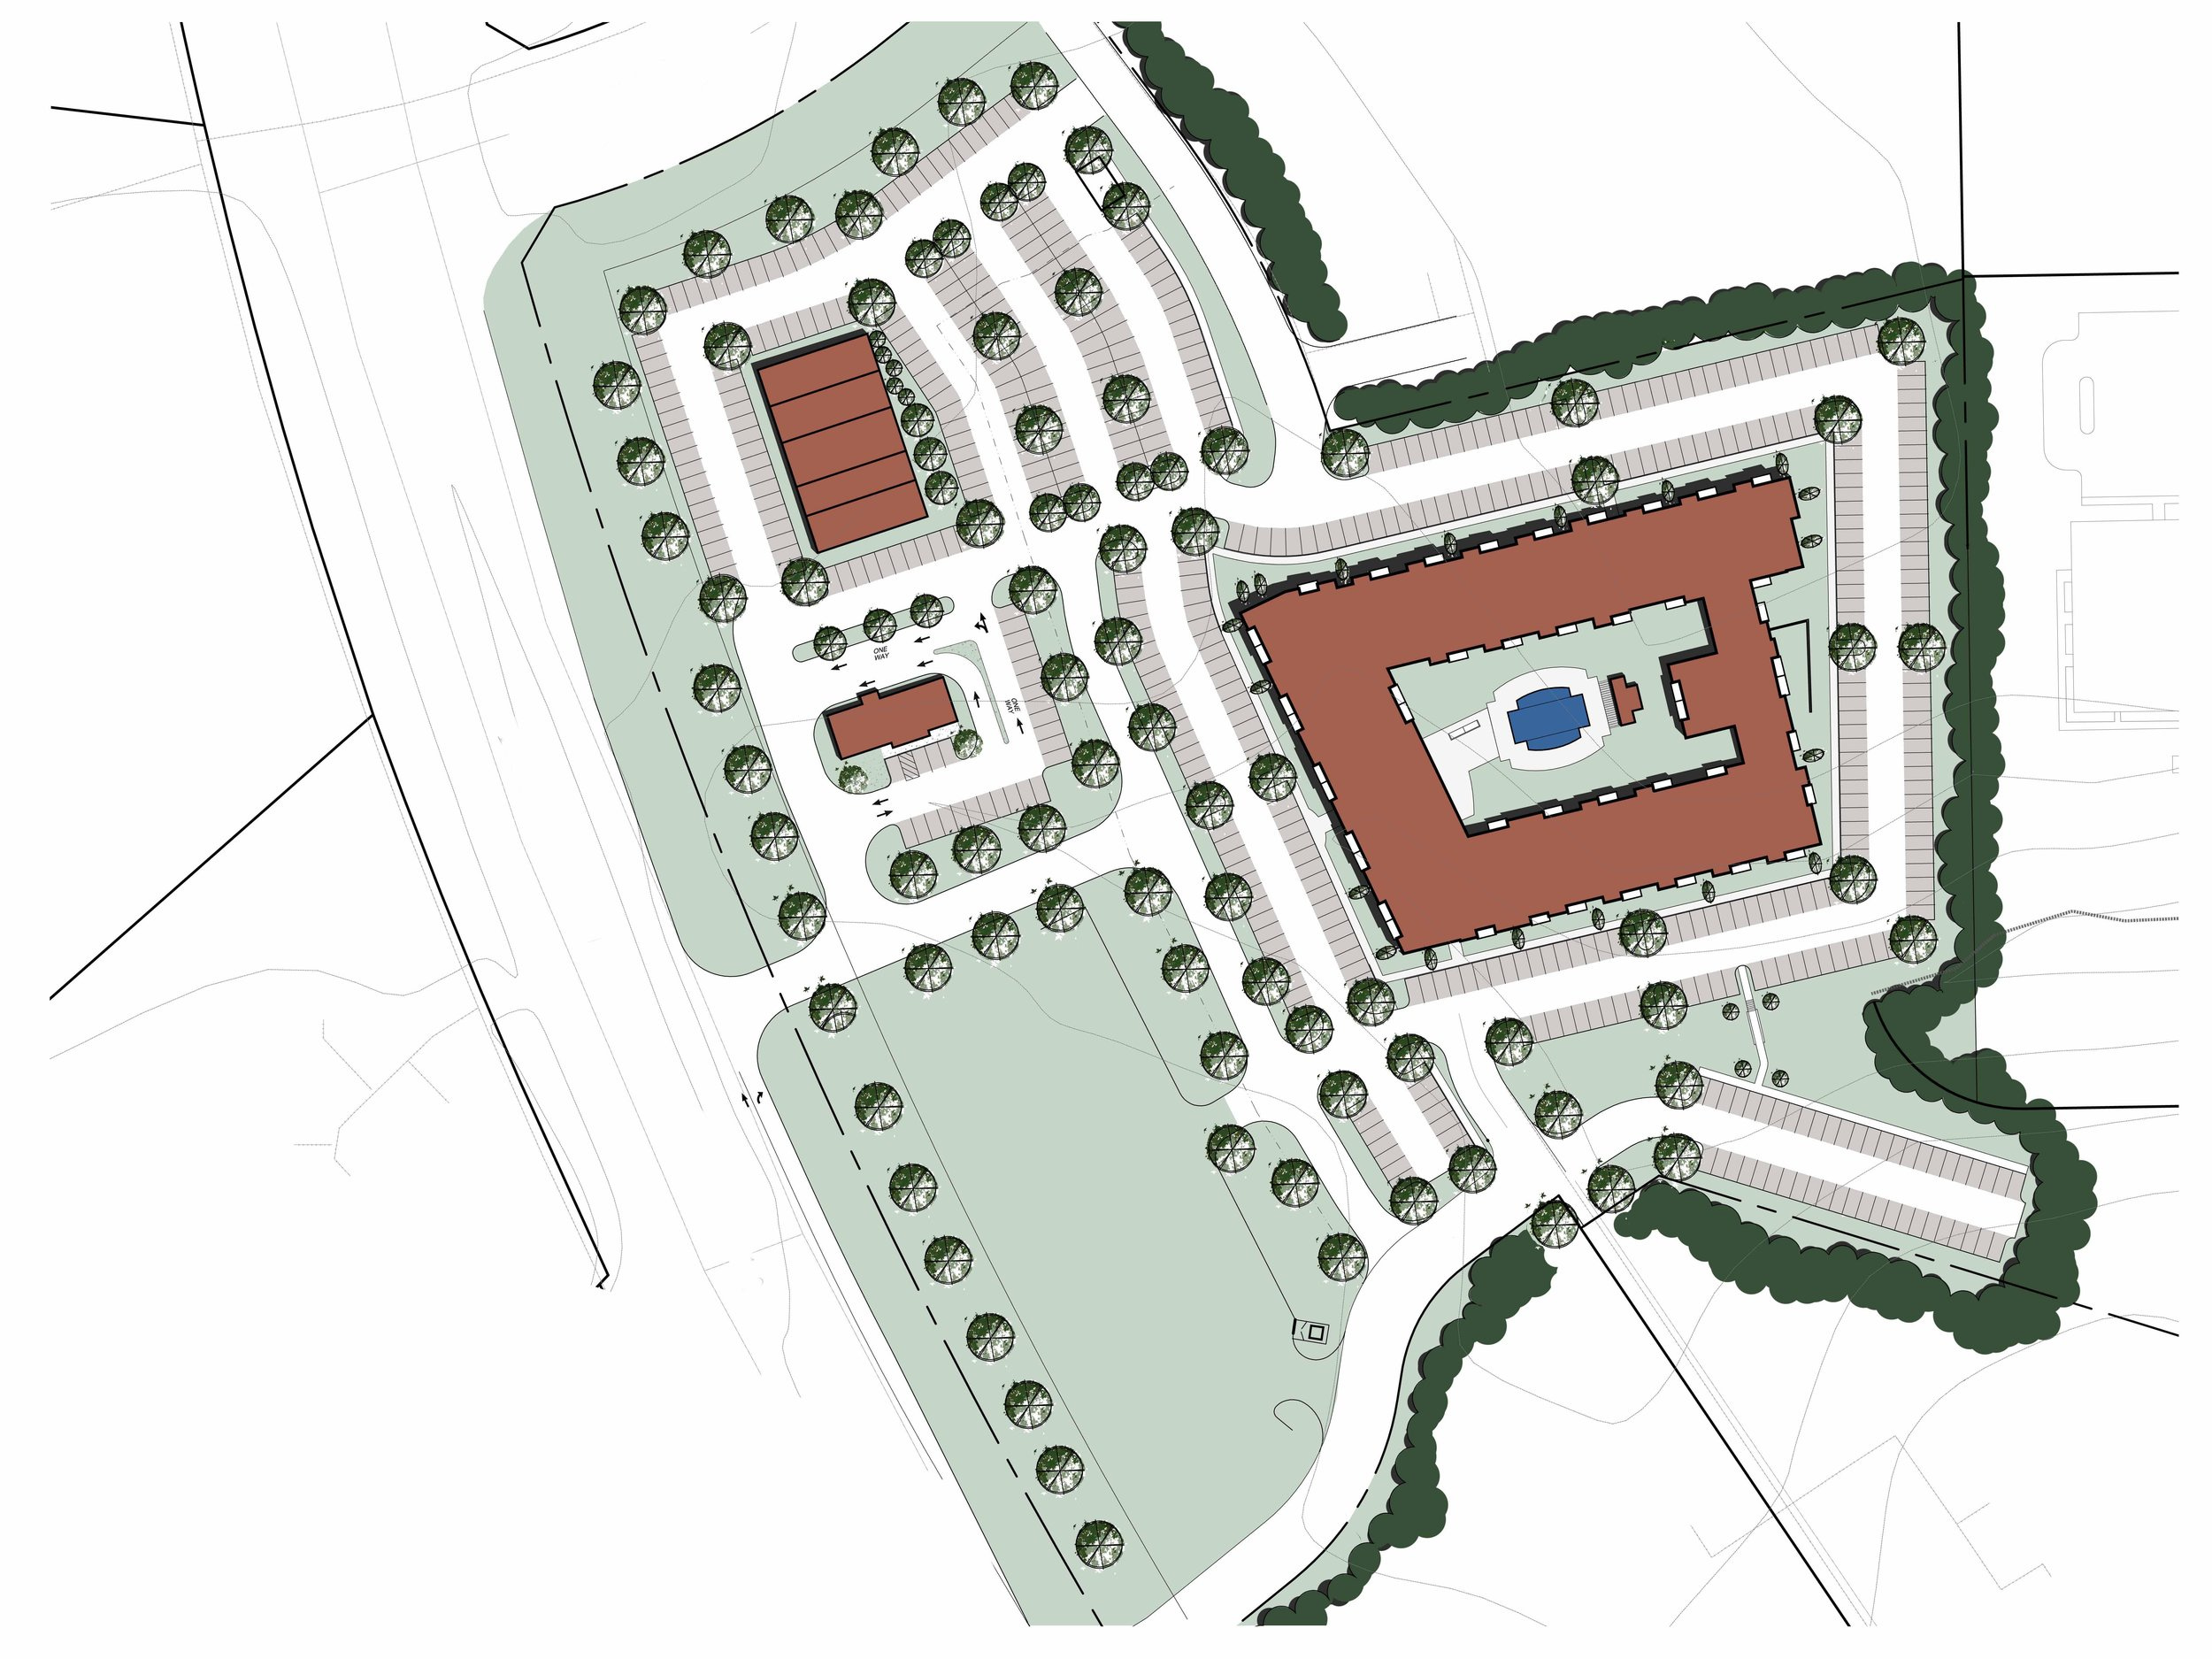 Multifamily Housing -  Proposed 200 unit development in Chesterfield County